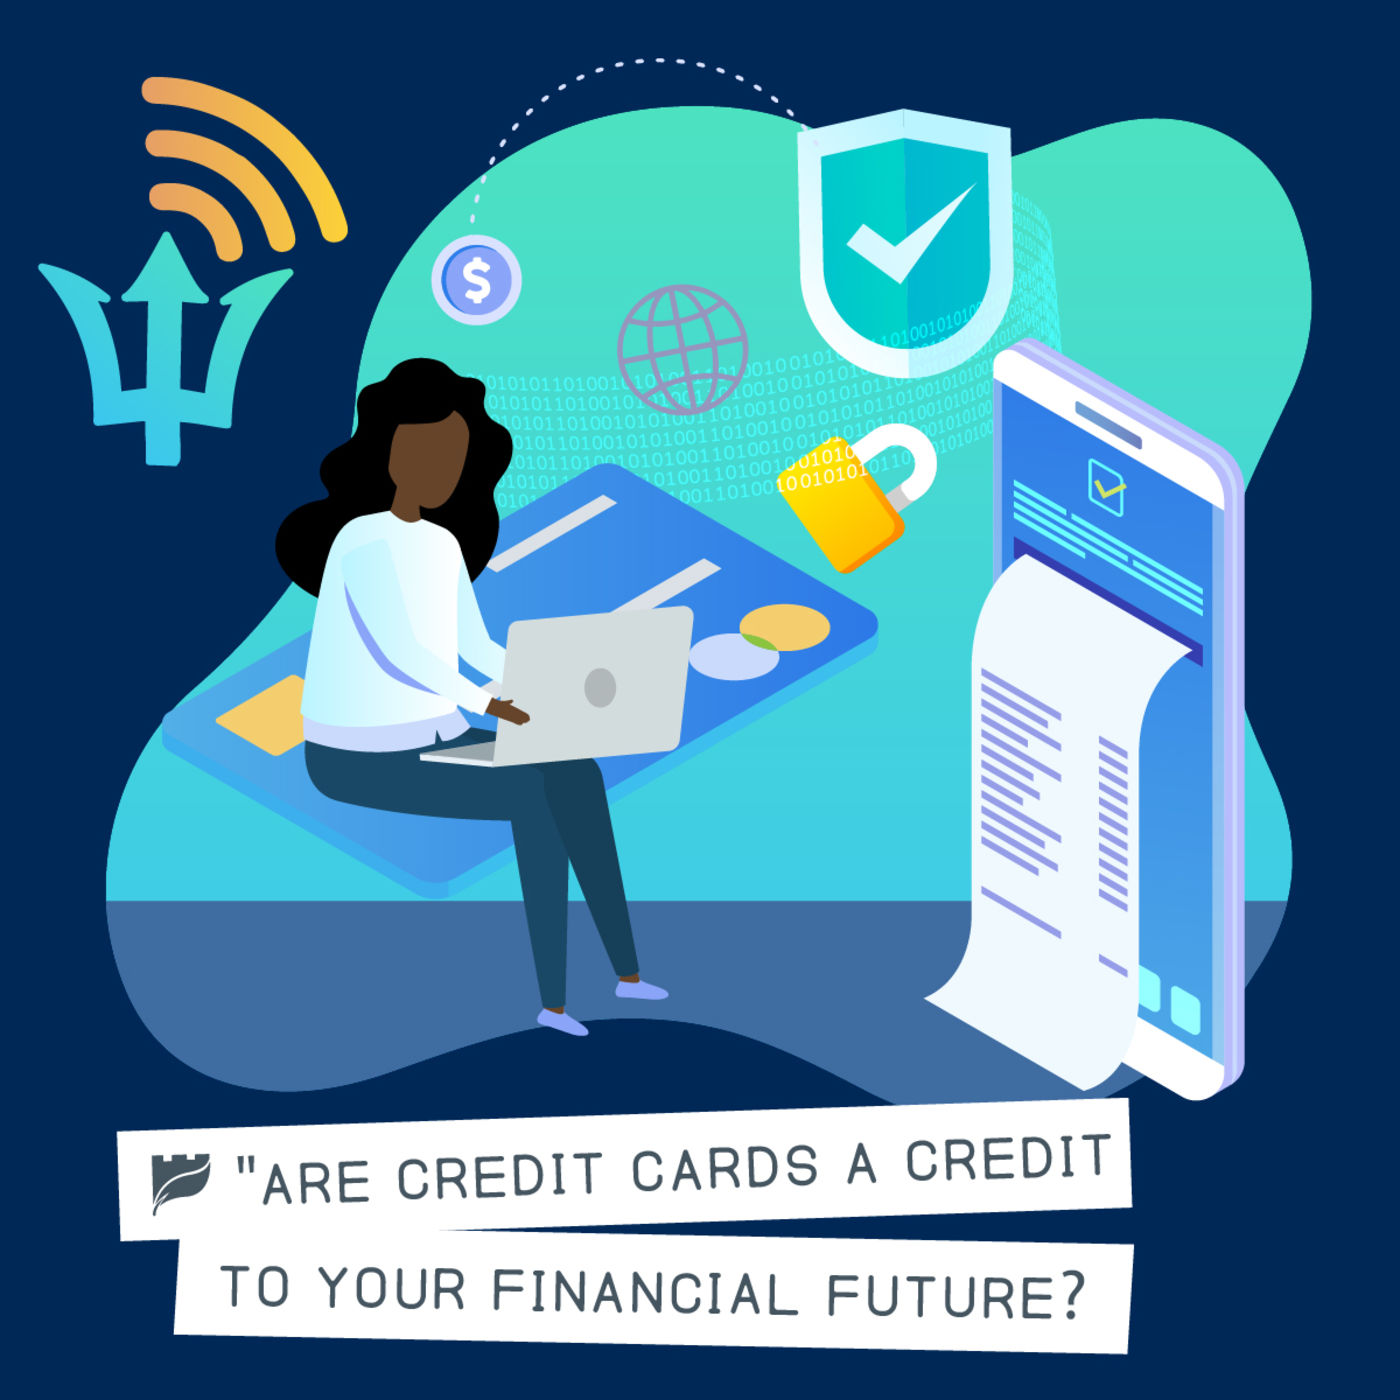 Ep. 10: Are Credit Cards a Credit to Your Financial Goals